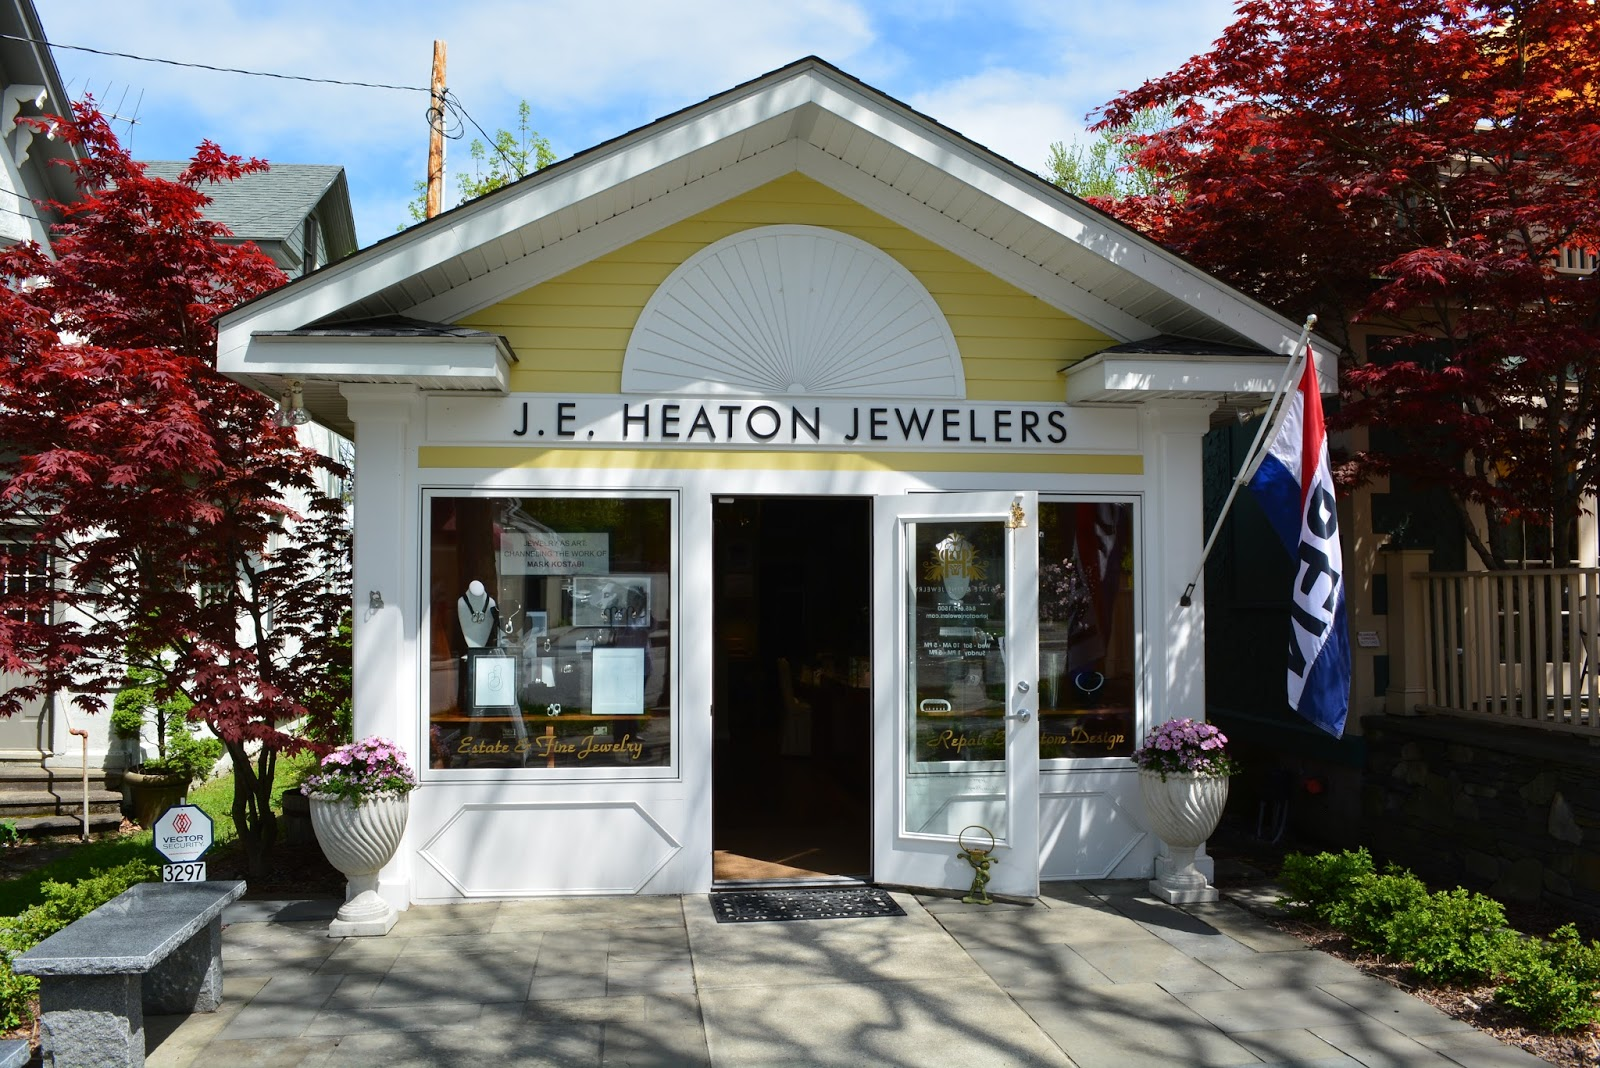 J. E. Heaton Jewelers store look like a tiny american colonial house, with a classic display and a cozy exterior setting.